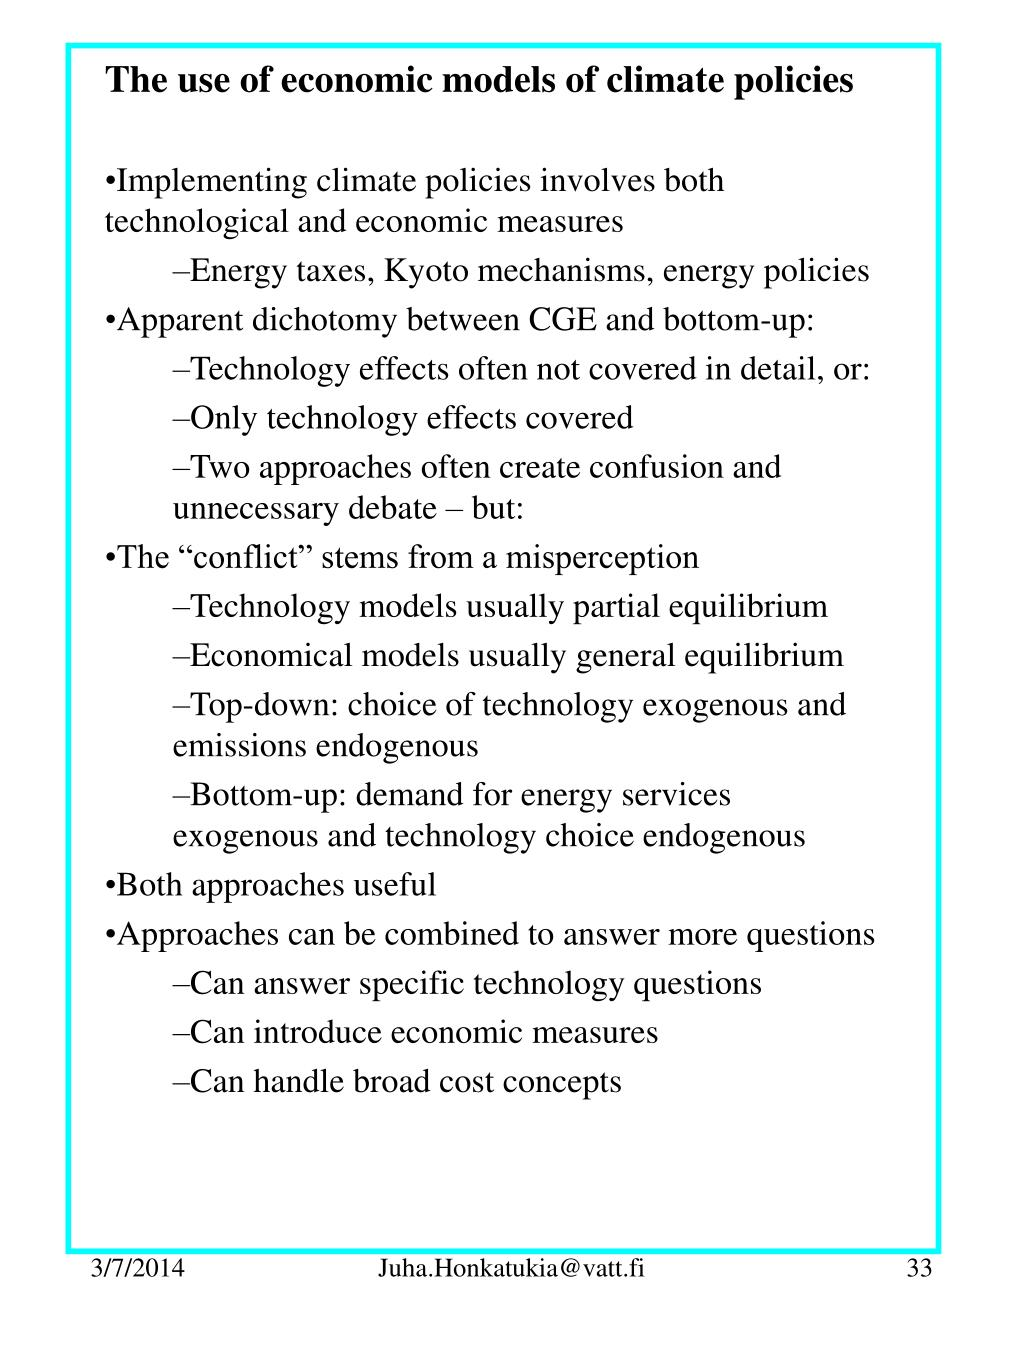 The use of economic models of climate policies